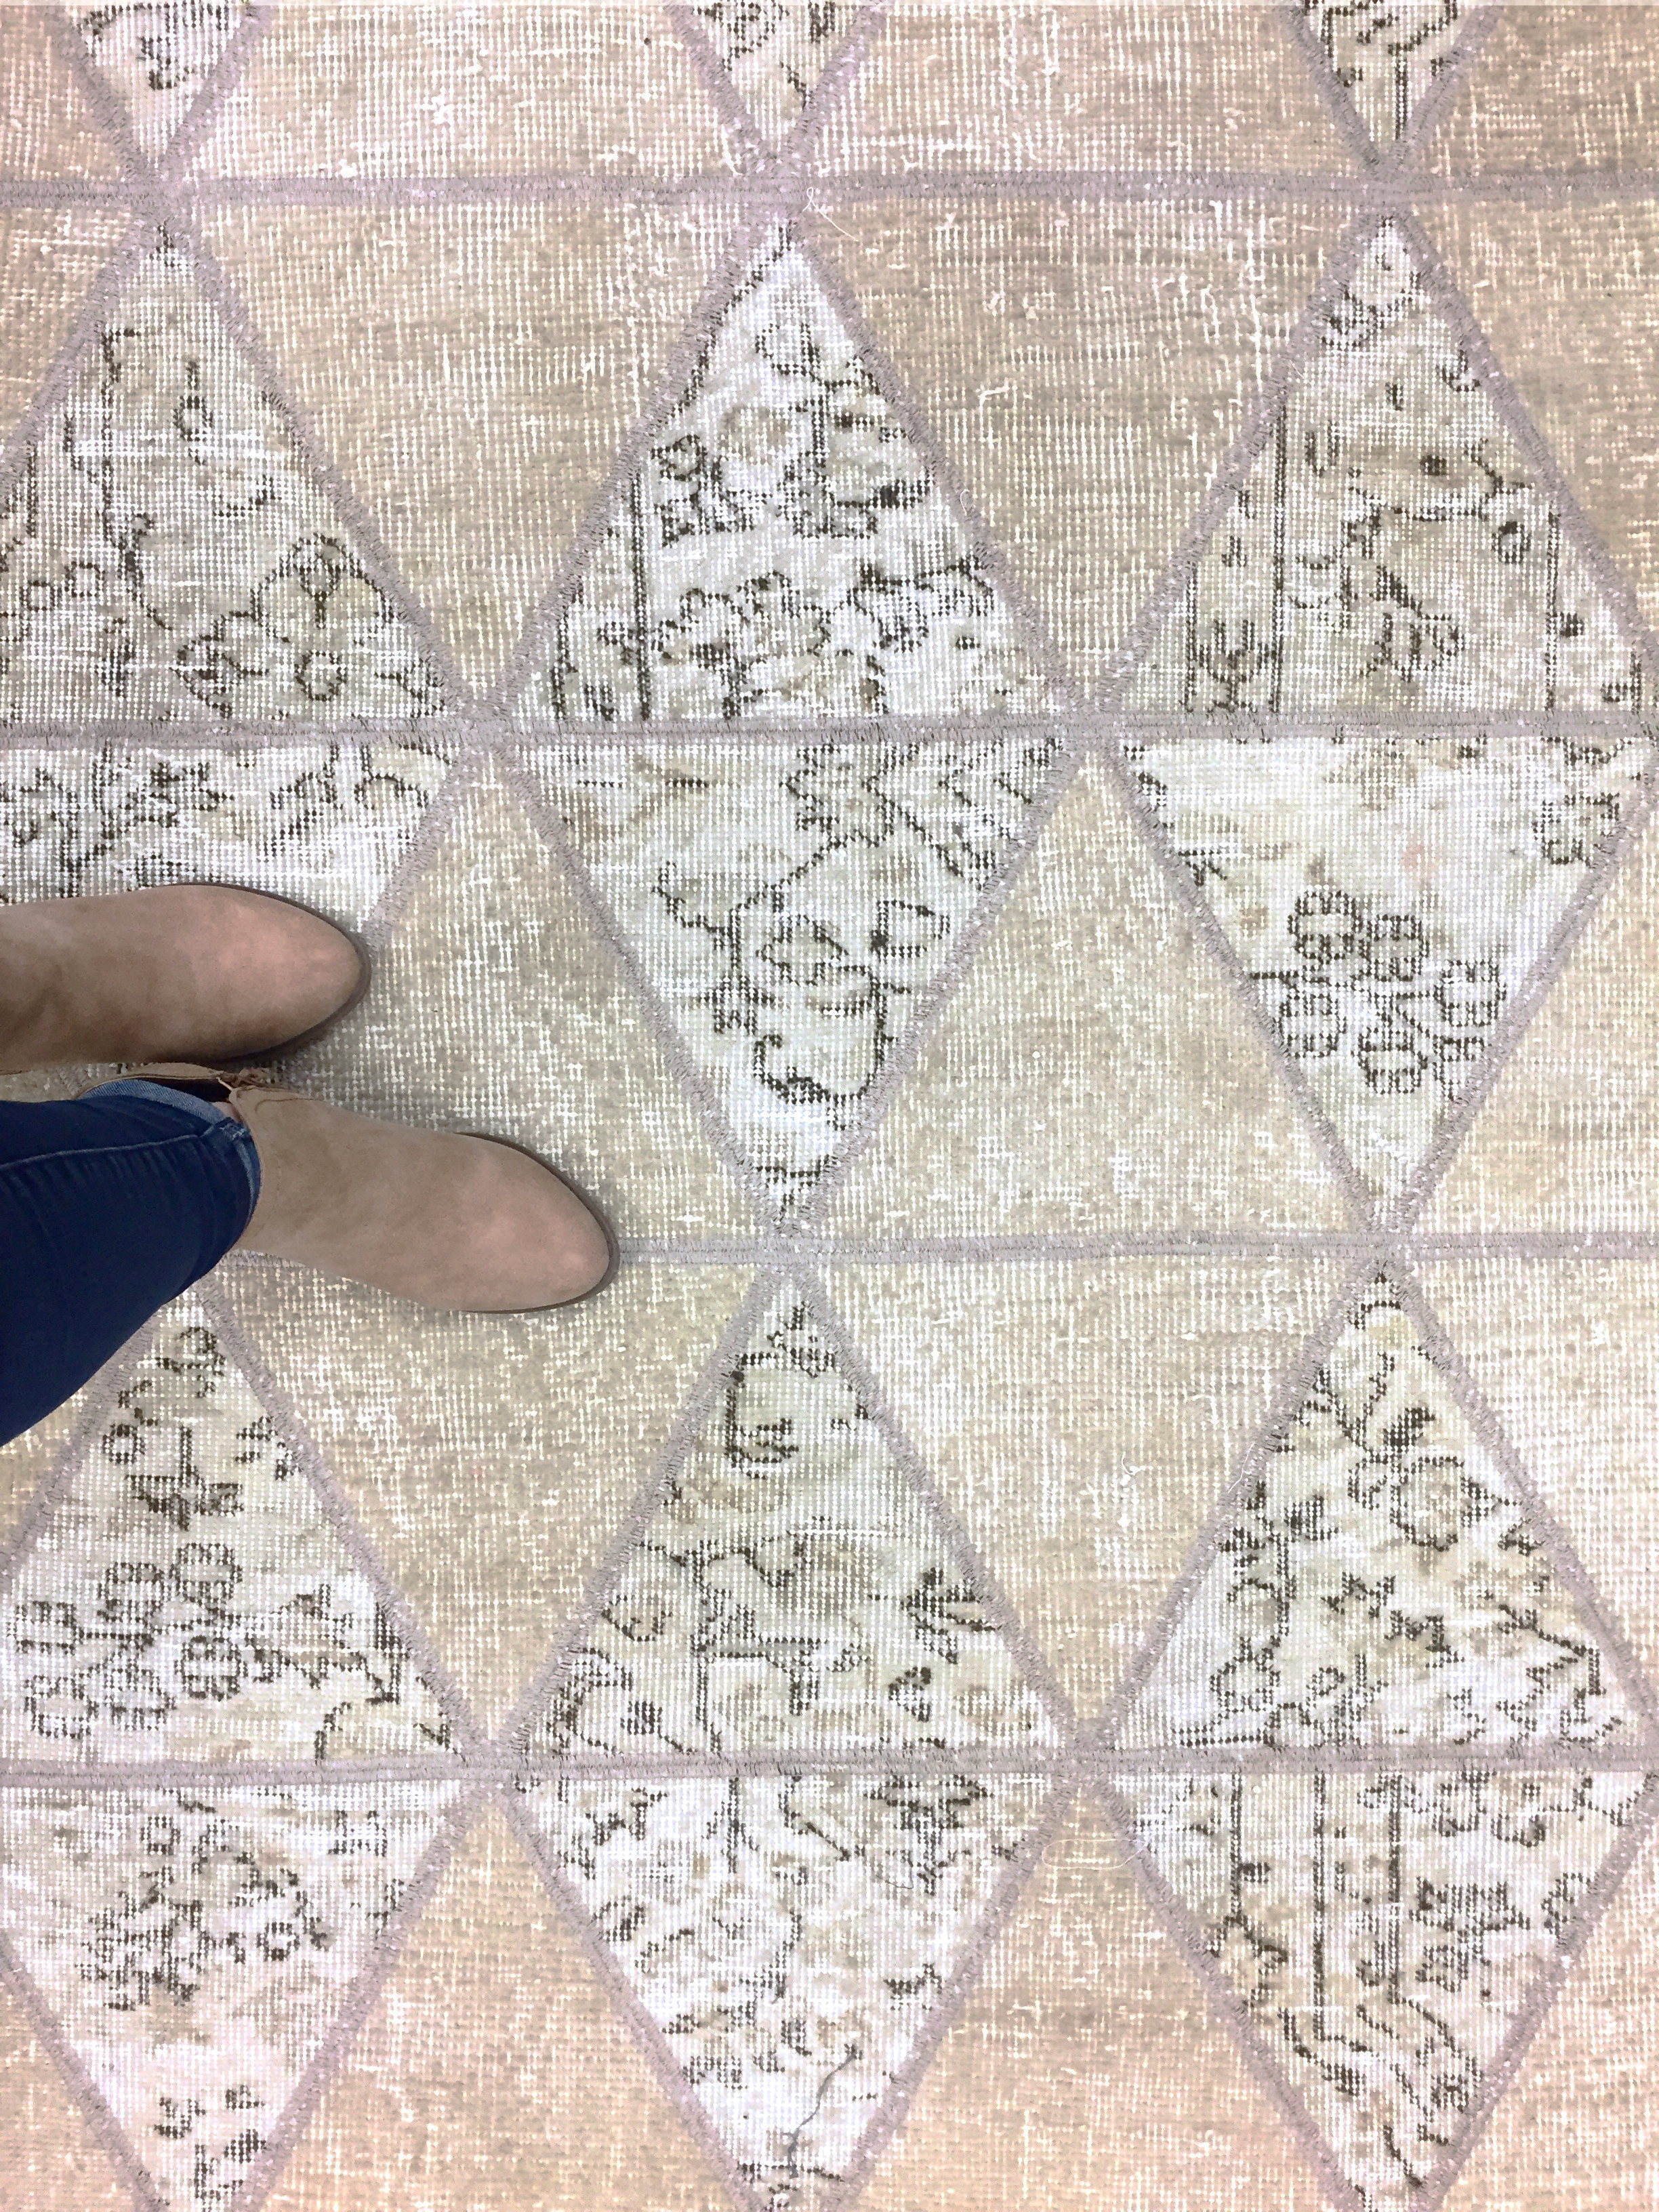 Beige Neutral Triangle Patterened Tiled Area Rug Overhead